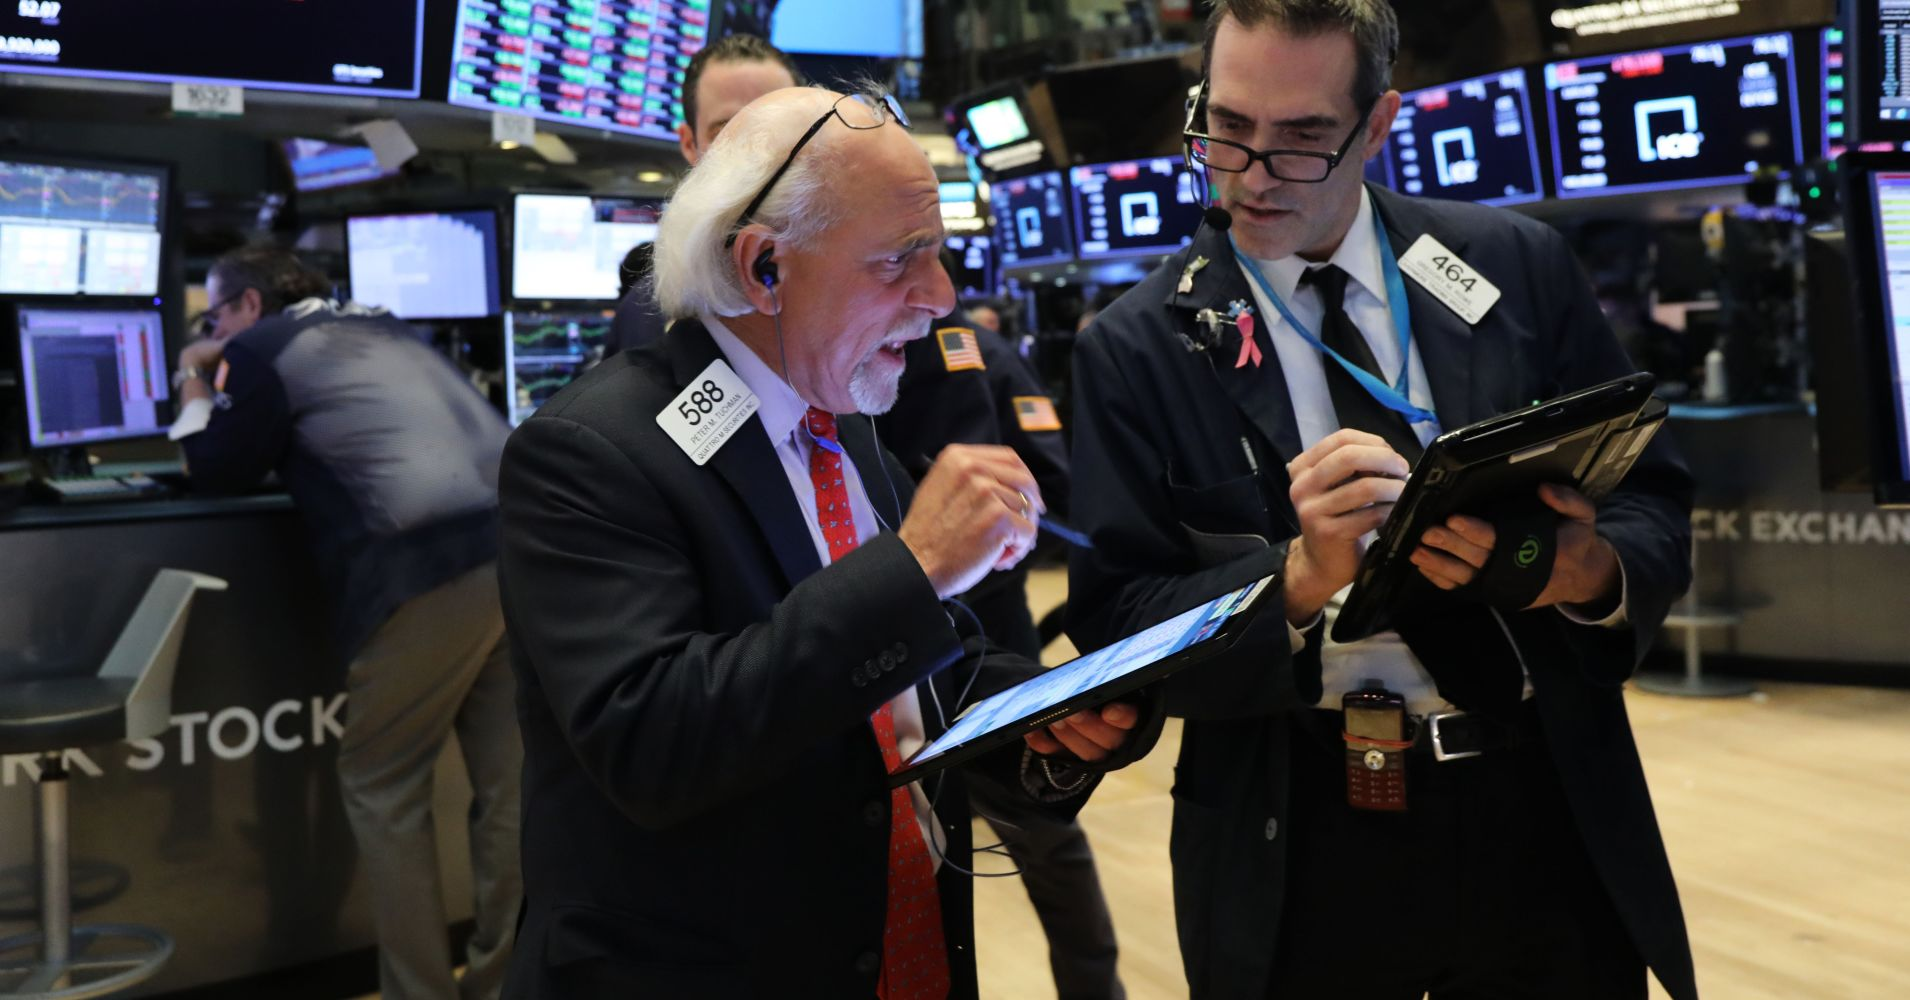 Traders work on the floor of the New York Stock Exchange (NYSE) on March 04, 2019 in New York City.